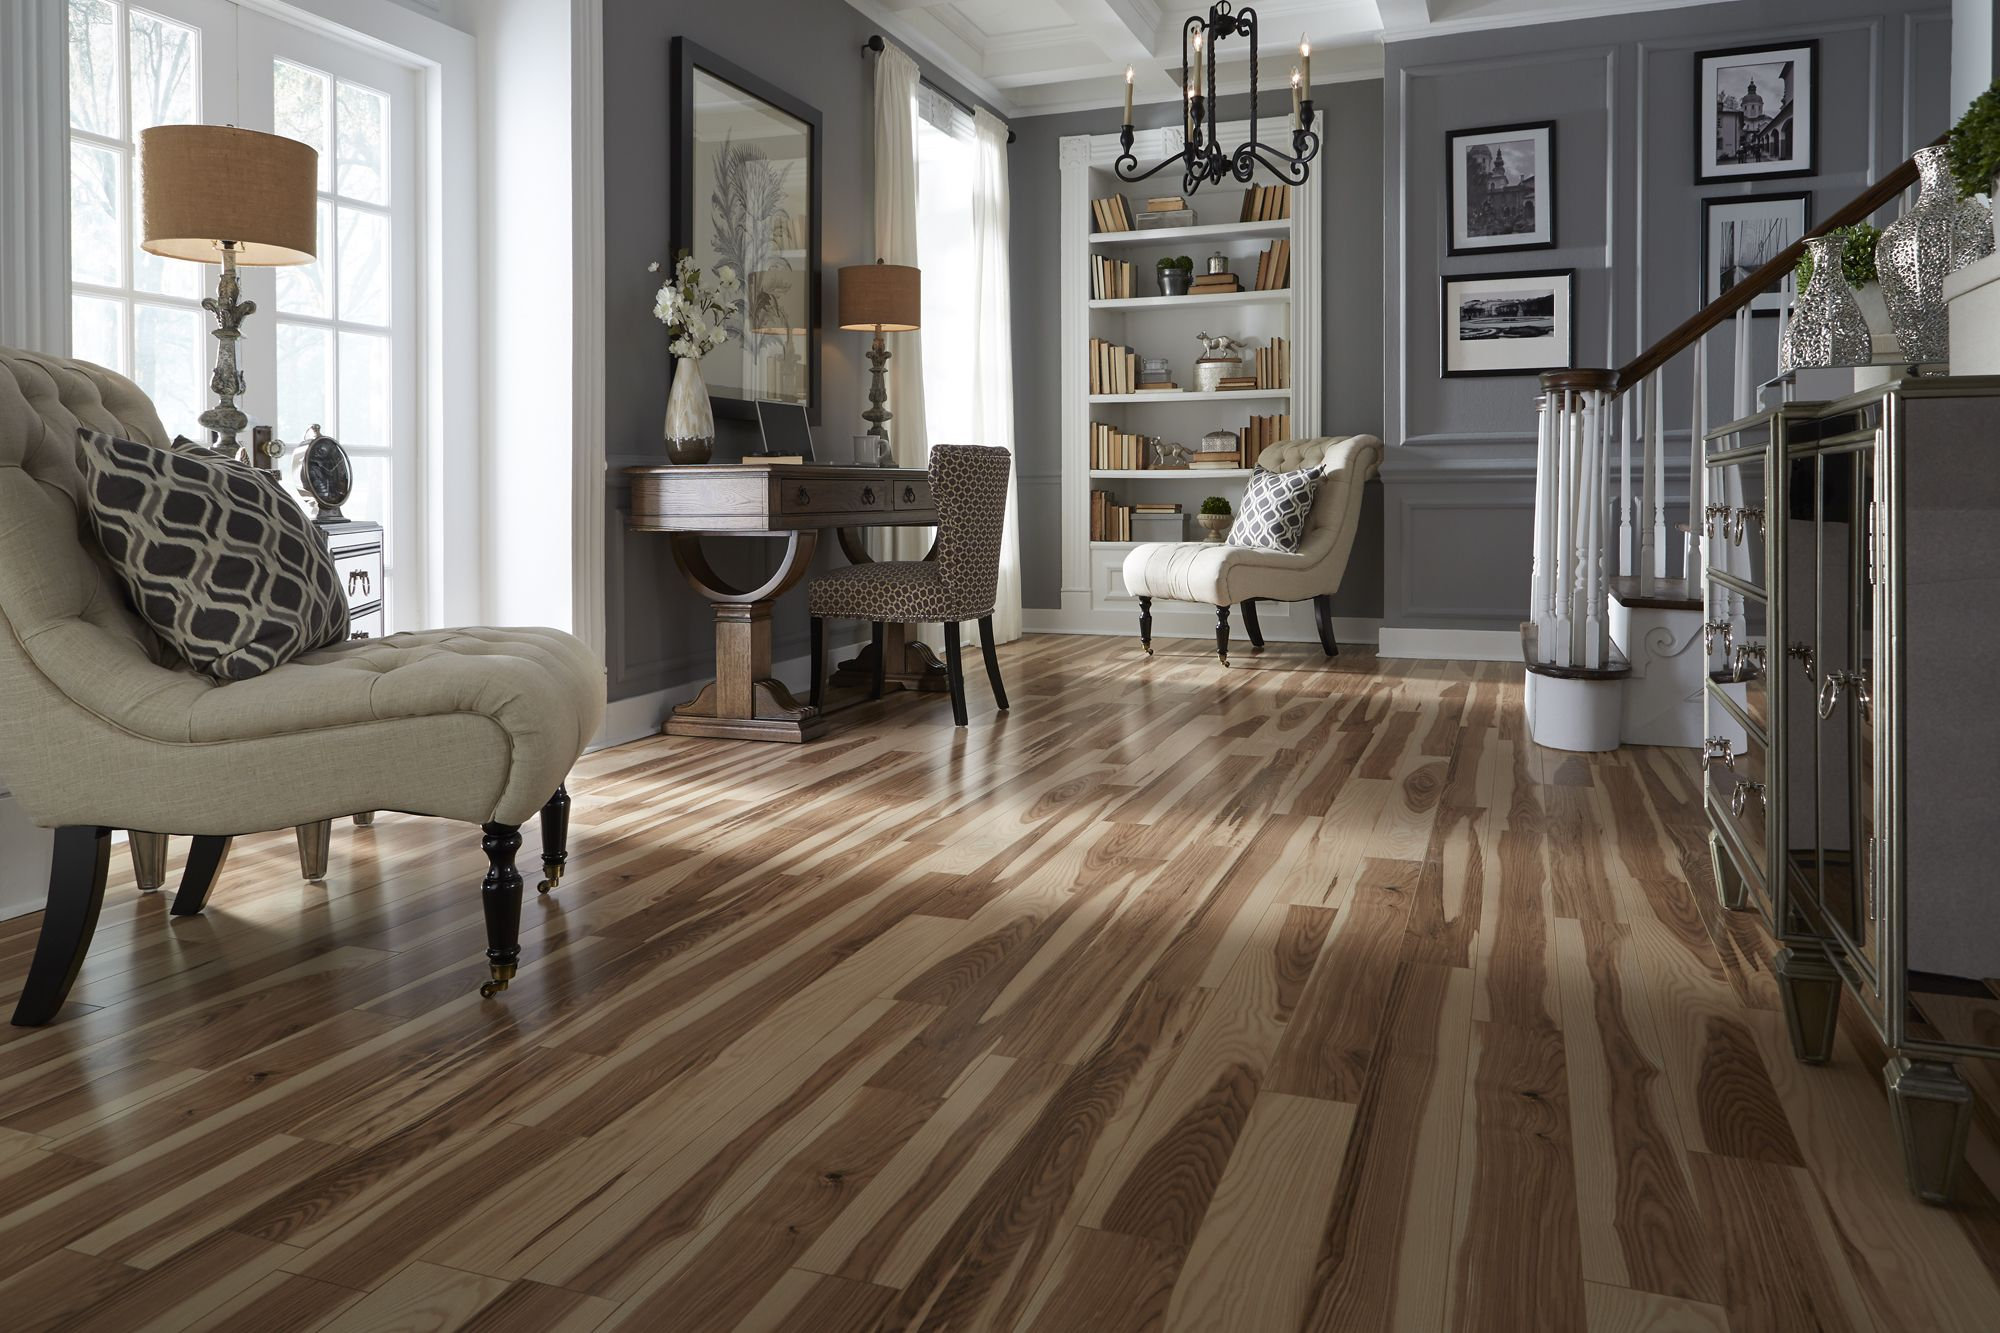 Top Style This laminate floor is the opposite of plain